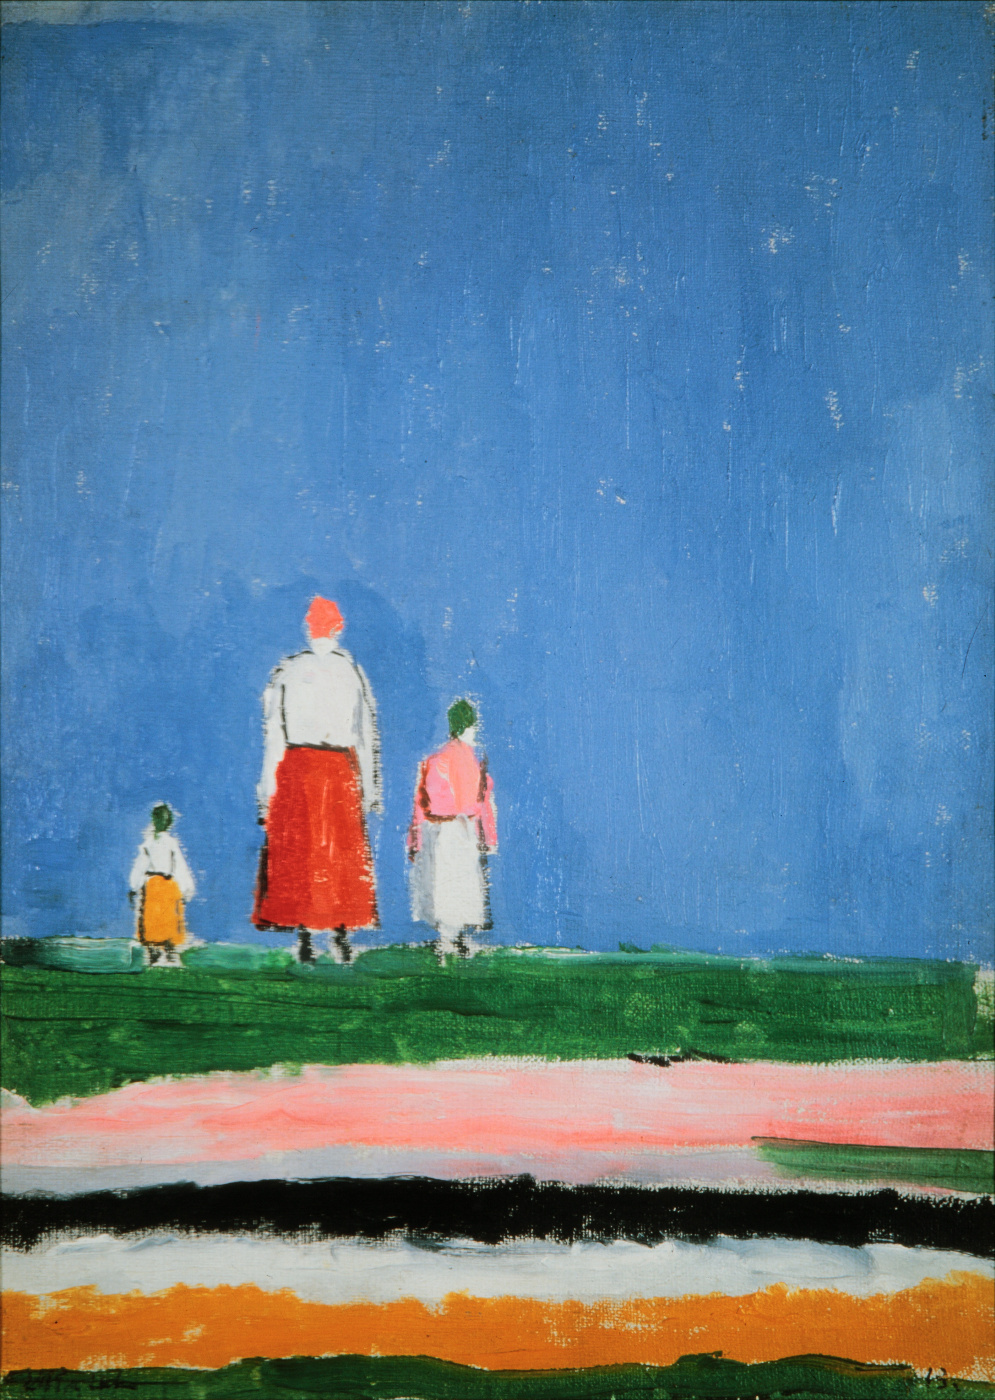 Kazimir Malevich. Three figures in a field